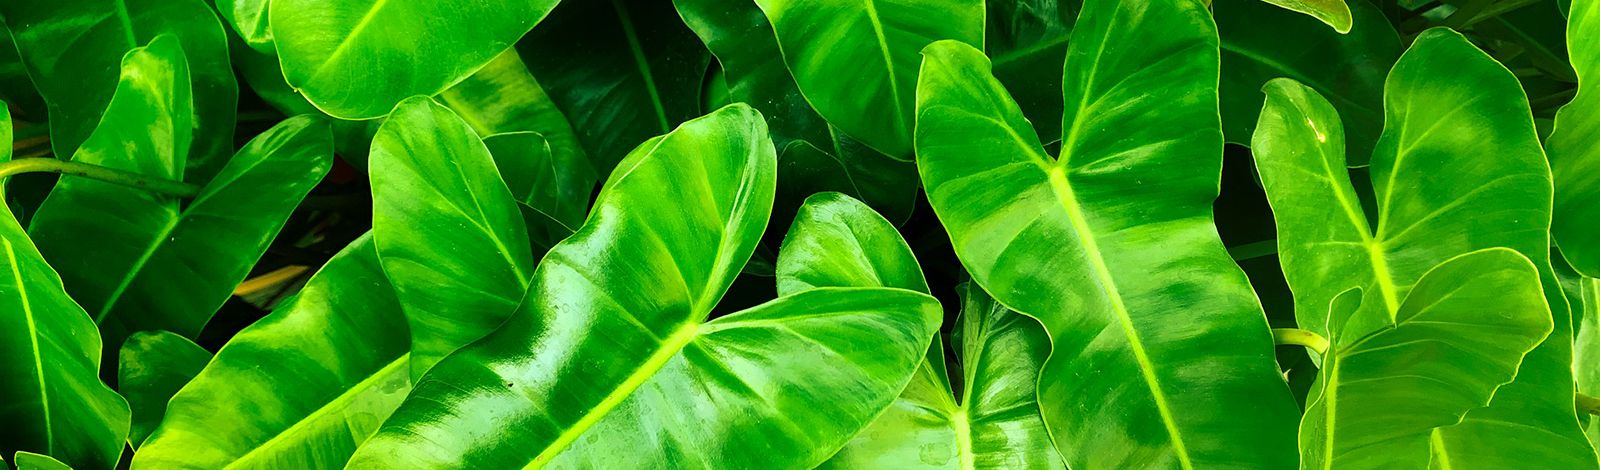 Vibrant green leaves